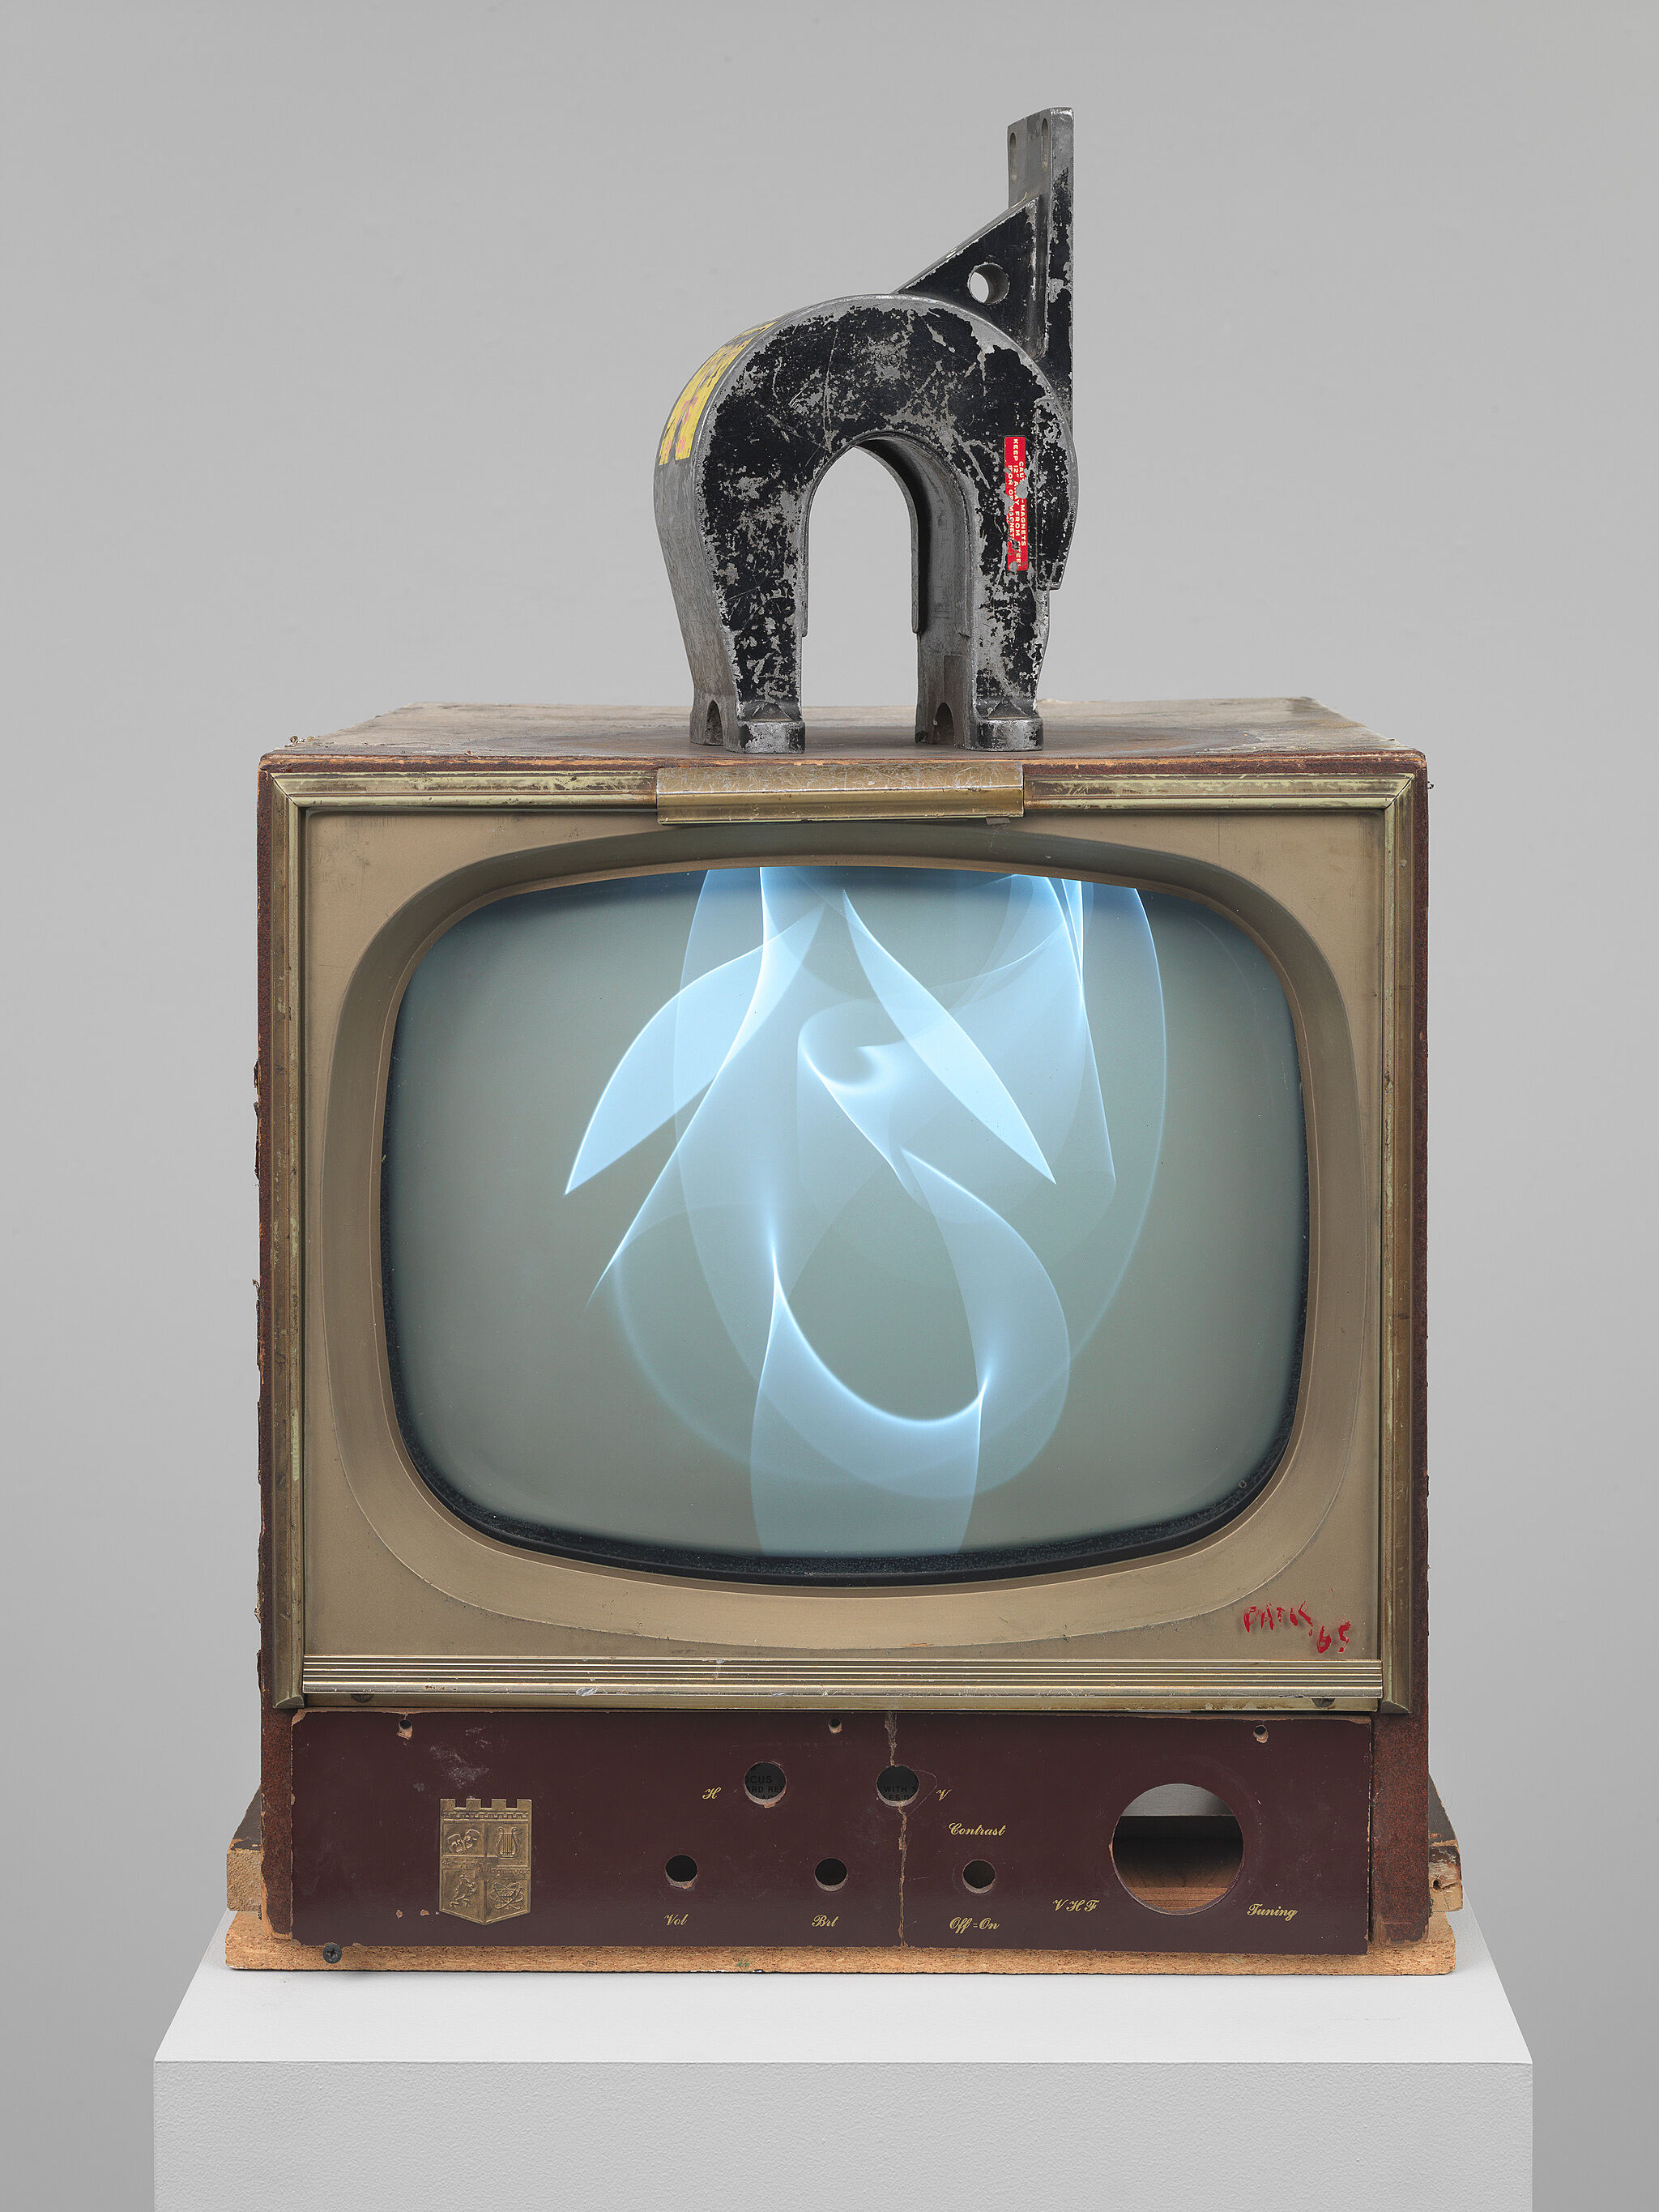 A large magnet on top of a television.